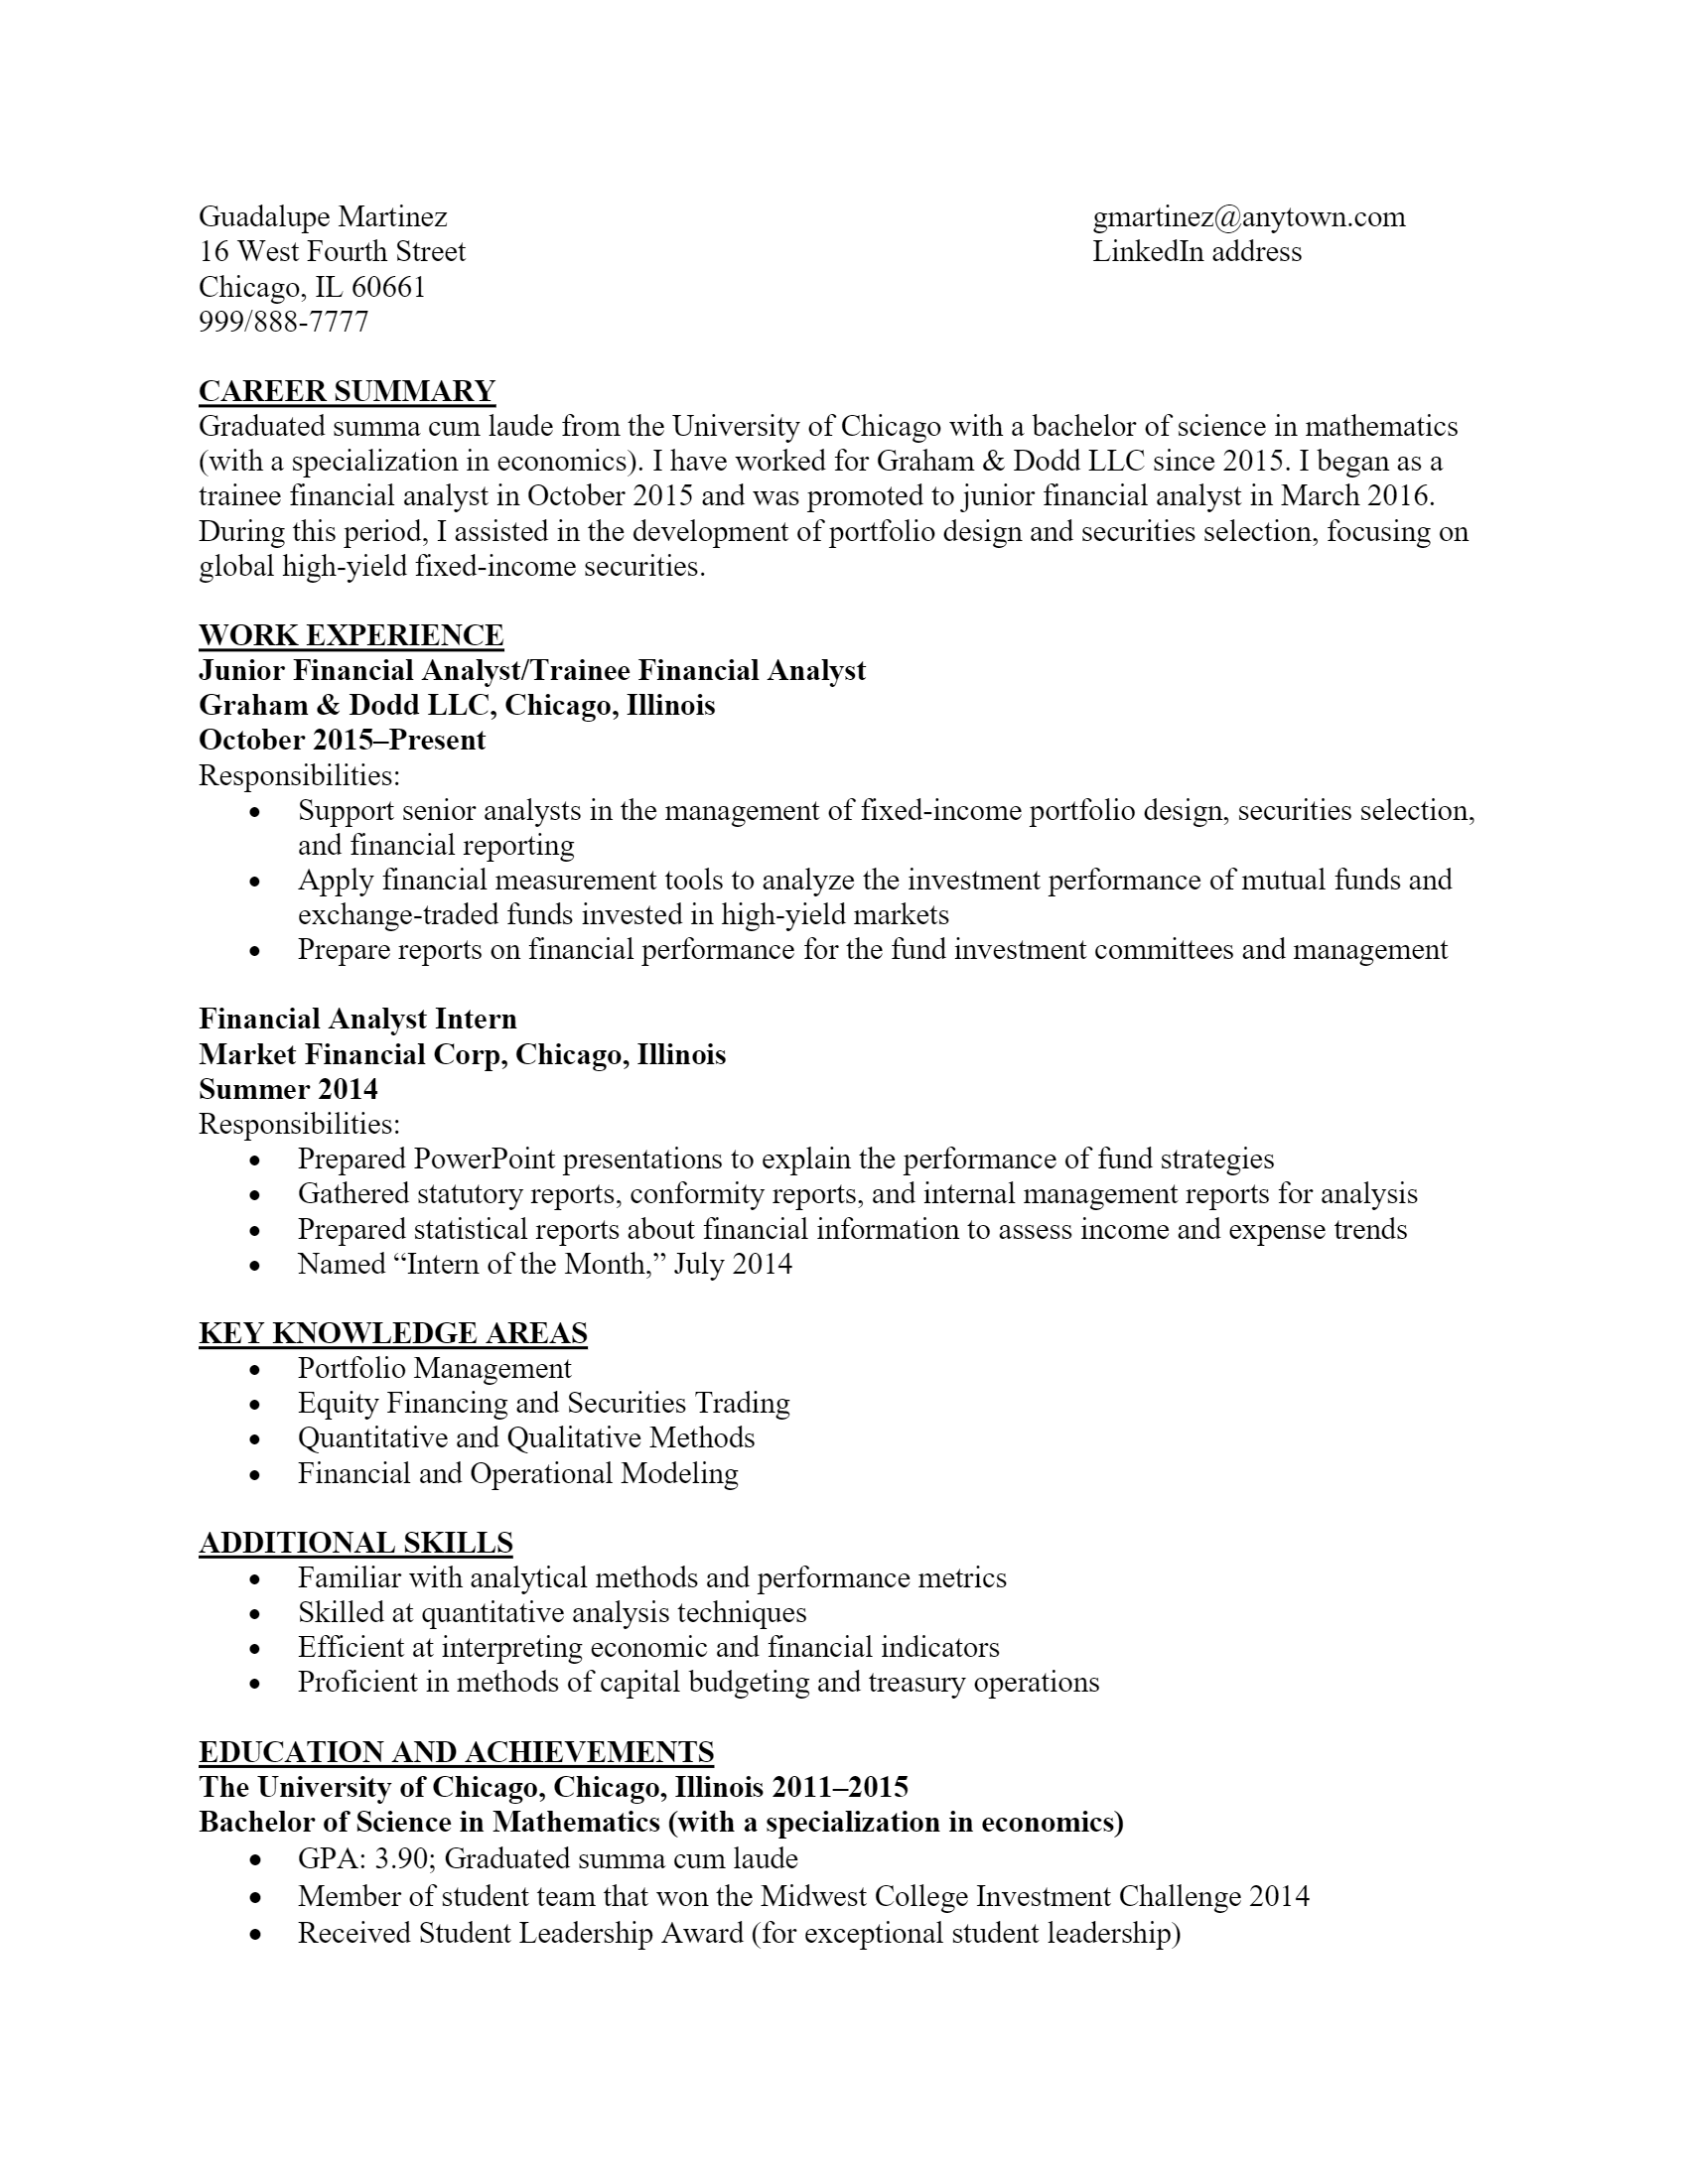 Financial Analyst Resume .Docx (Word)